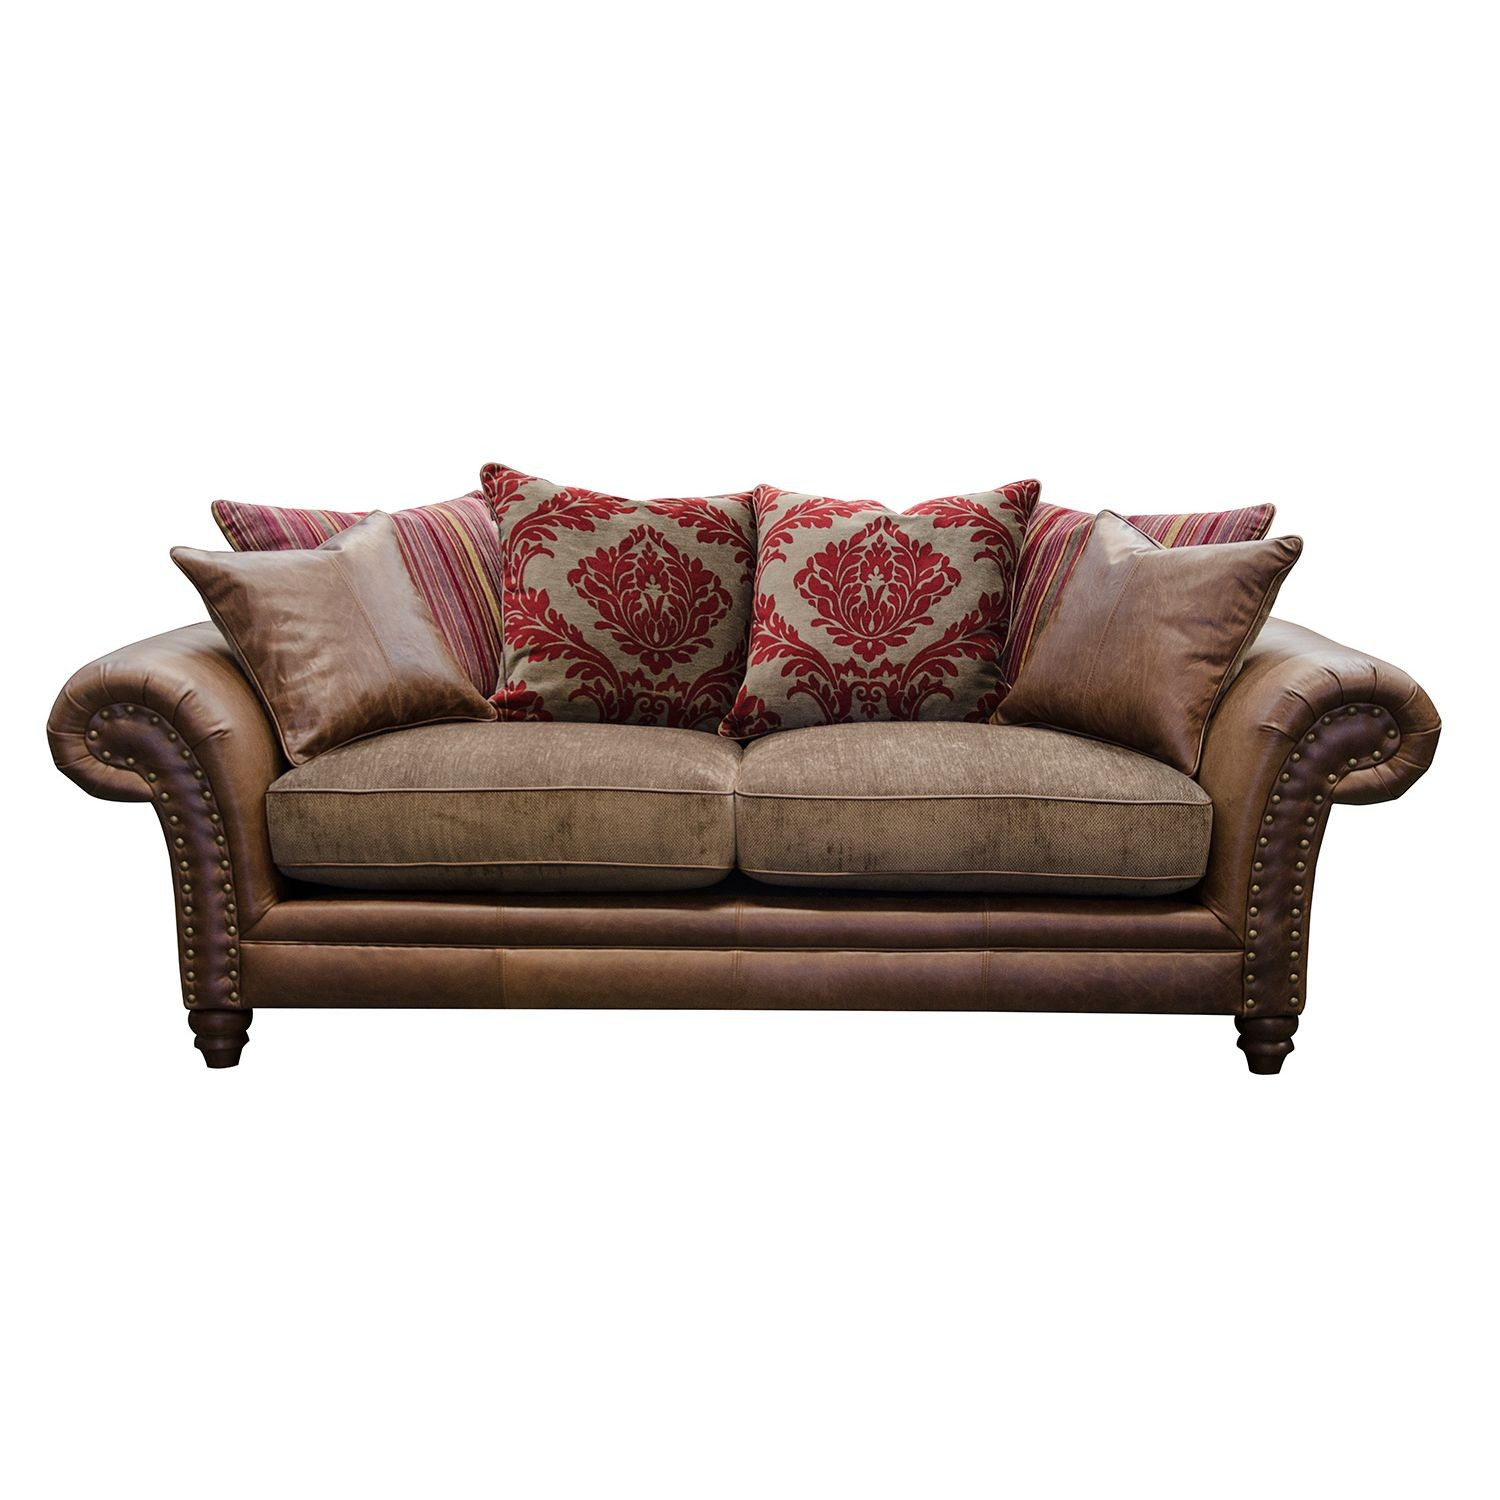 alexander james hudson 2 seater sofa 2 seat jin brown. Black Bedroom Furniture Sets. Home Design Ideas